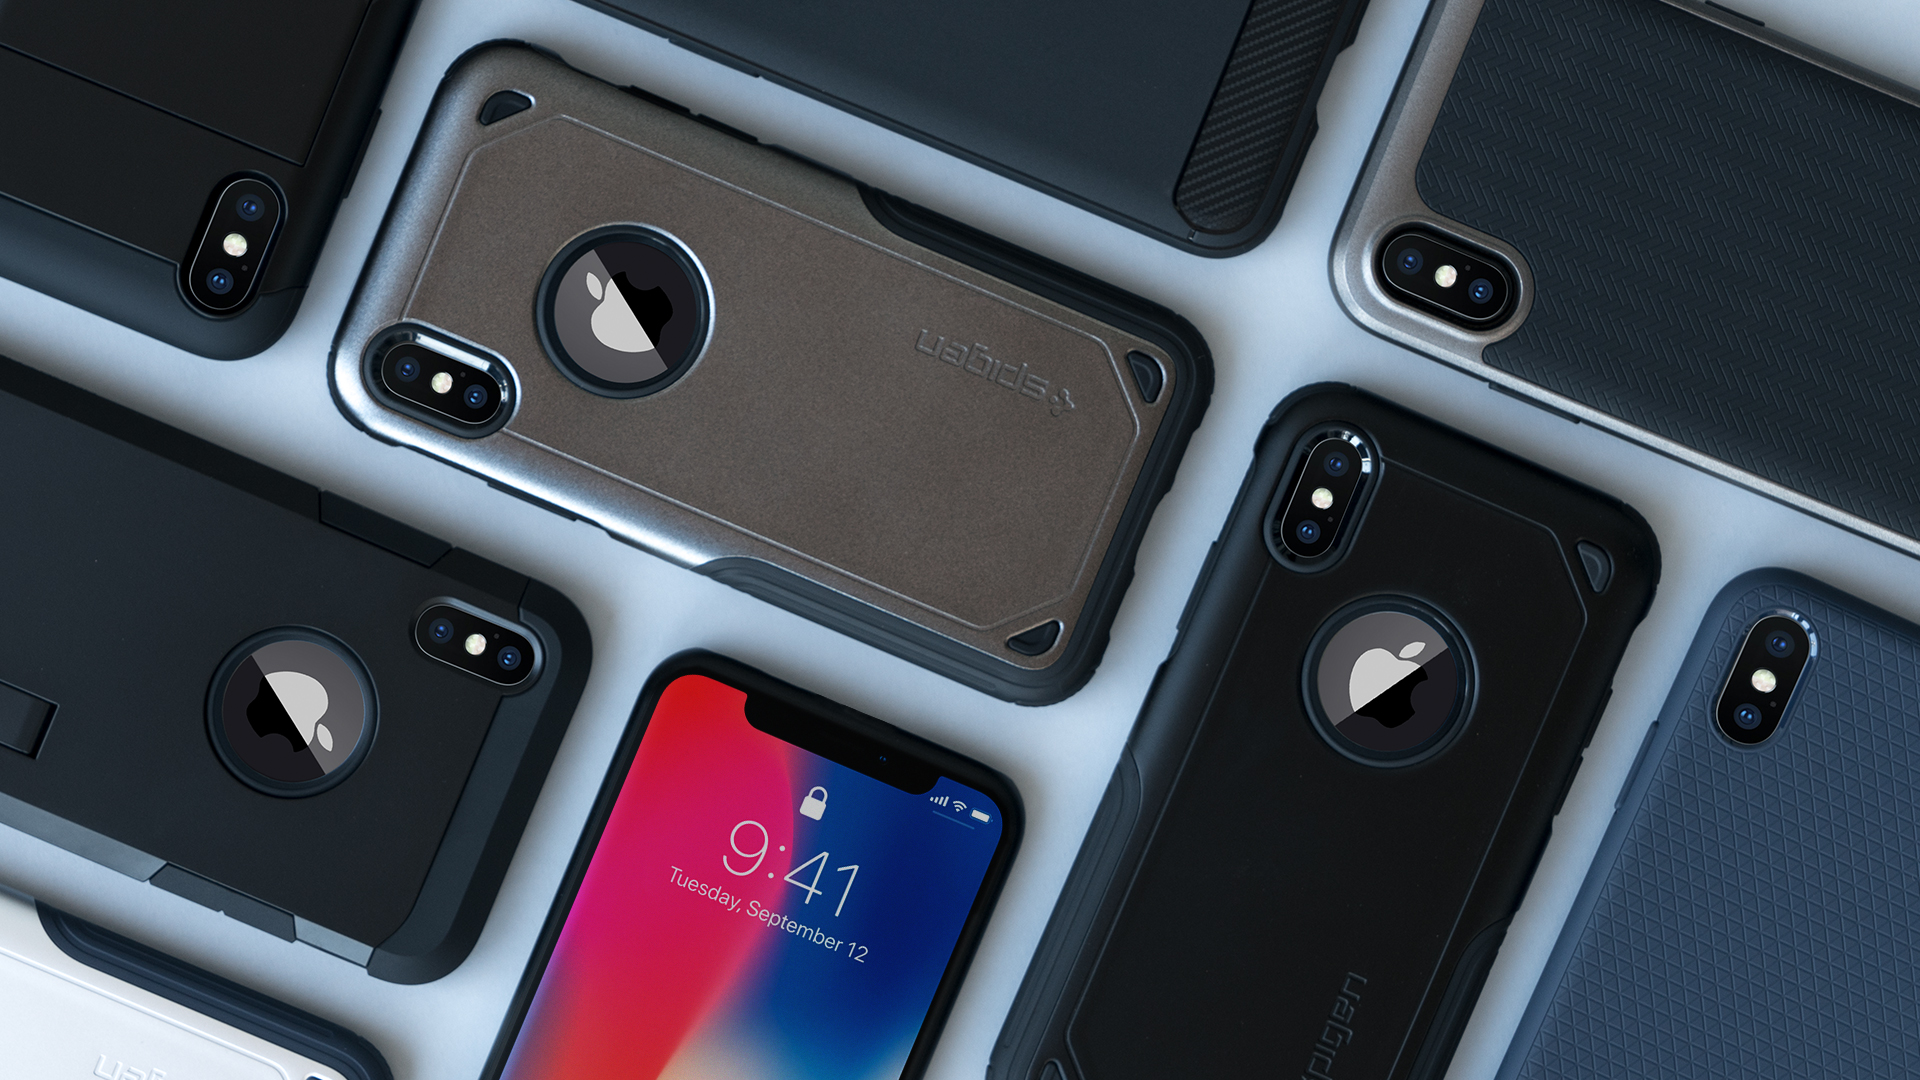 Spigen's iPhone X cases, screen protector & wireless charger available now